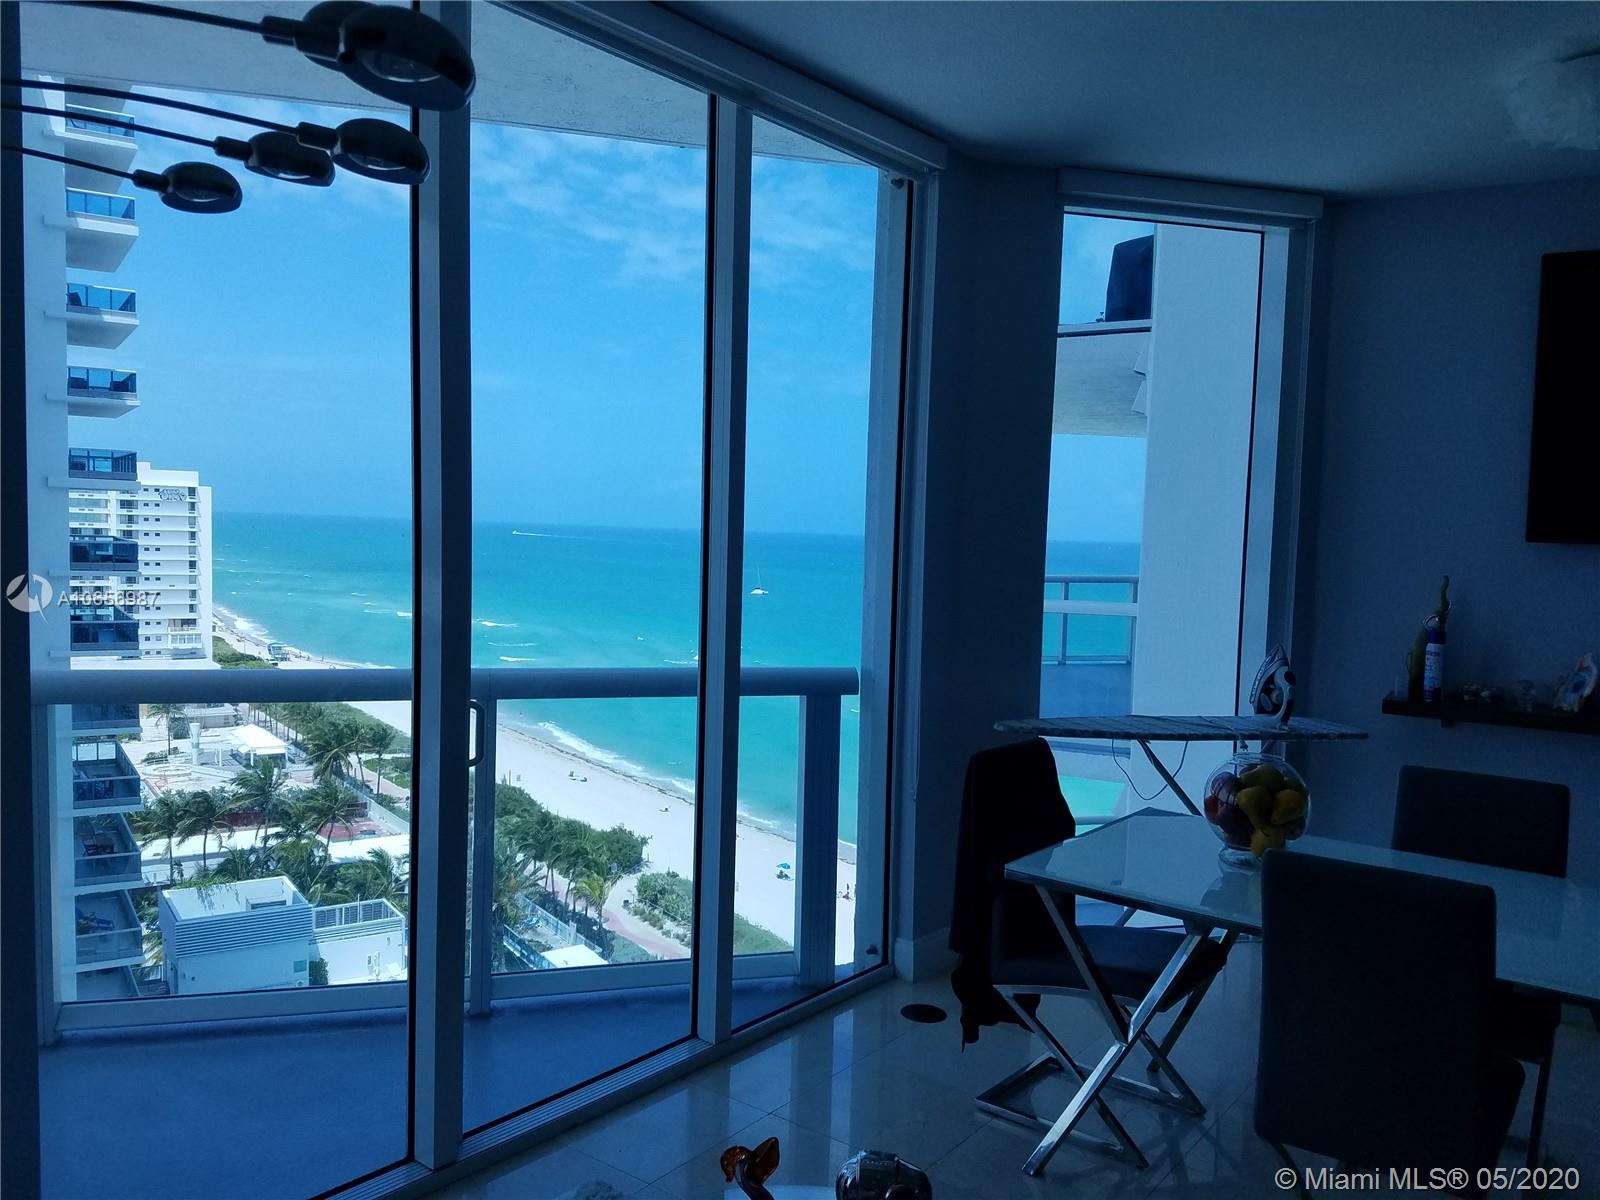 BREATHATAKING PANORAMIC VIEWS OF THE OCEAN & CITY  COMPLETELY REMODELED,NEW WASHER/DRYER IN THE UNIT IN A BUILDING OF A BEAUTIFUL VIEW TO THE PRECIOUS  MIAMI BEACH, DIRECT VIEW TO THE OCEAN SECURITY 24 HOURS CENTRICALLY LOCATED AND WITH ALL THE AMENITIES  WALK TO SHOPPING & FINE RESTAURANTS NEW PUBLIX,24/7 WALGREENS YOU CAN NOT MISS IT, ACCEPT AIRBNB 12 MONTHS OF THE YEAR, INVESTORS WELCOME!